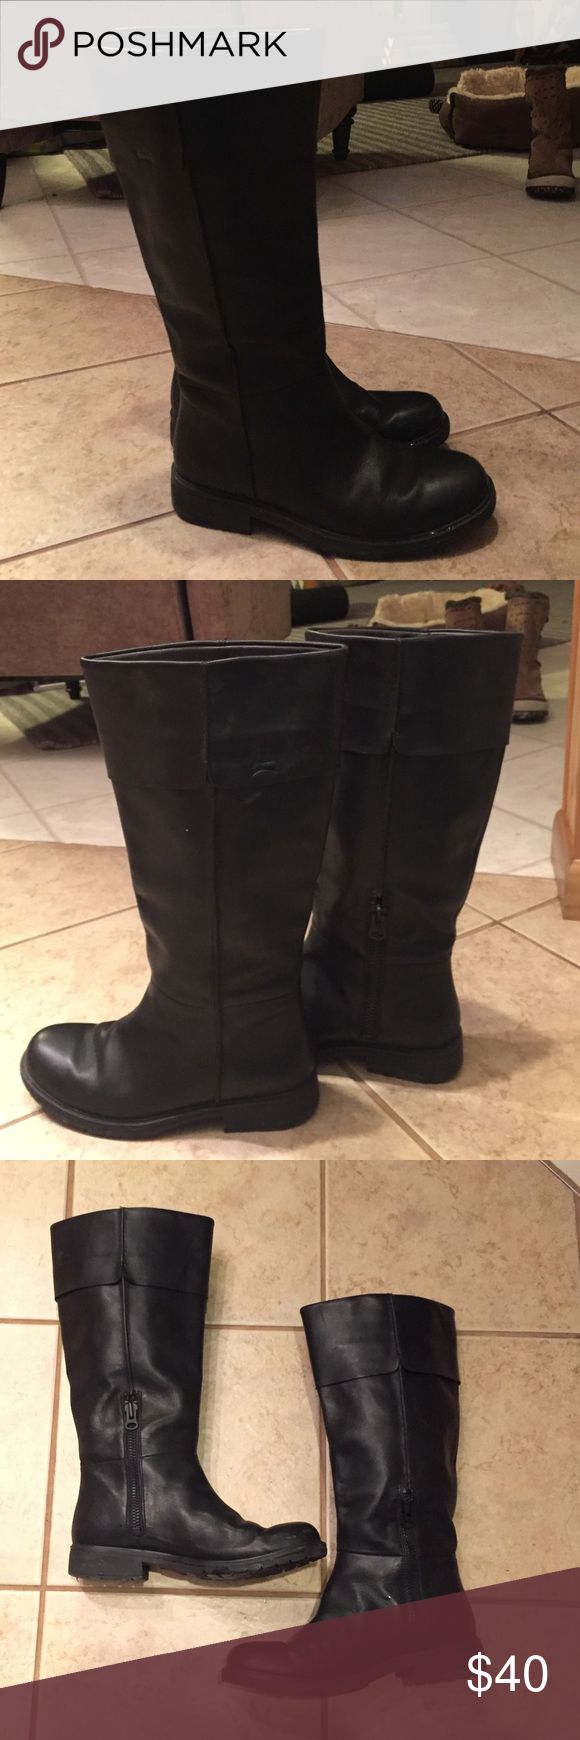 Black leather Camper boots Tall riding boot style with inside zipper, worn twice. Camper size 39 so closer to a US 8. Fits a wider calf. Camper Shoes Heeled Boots